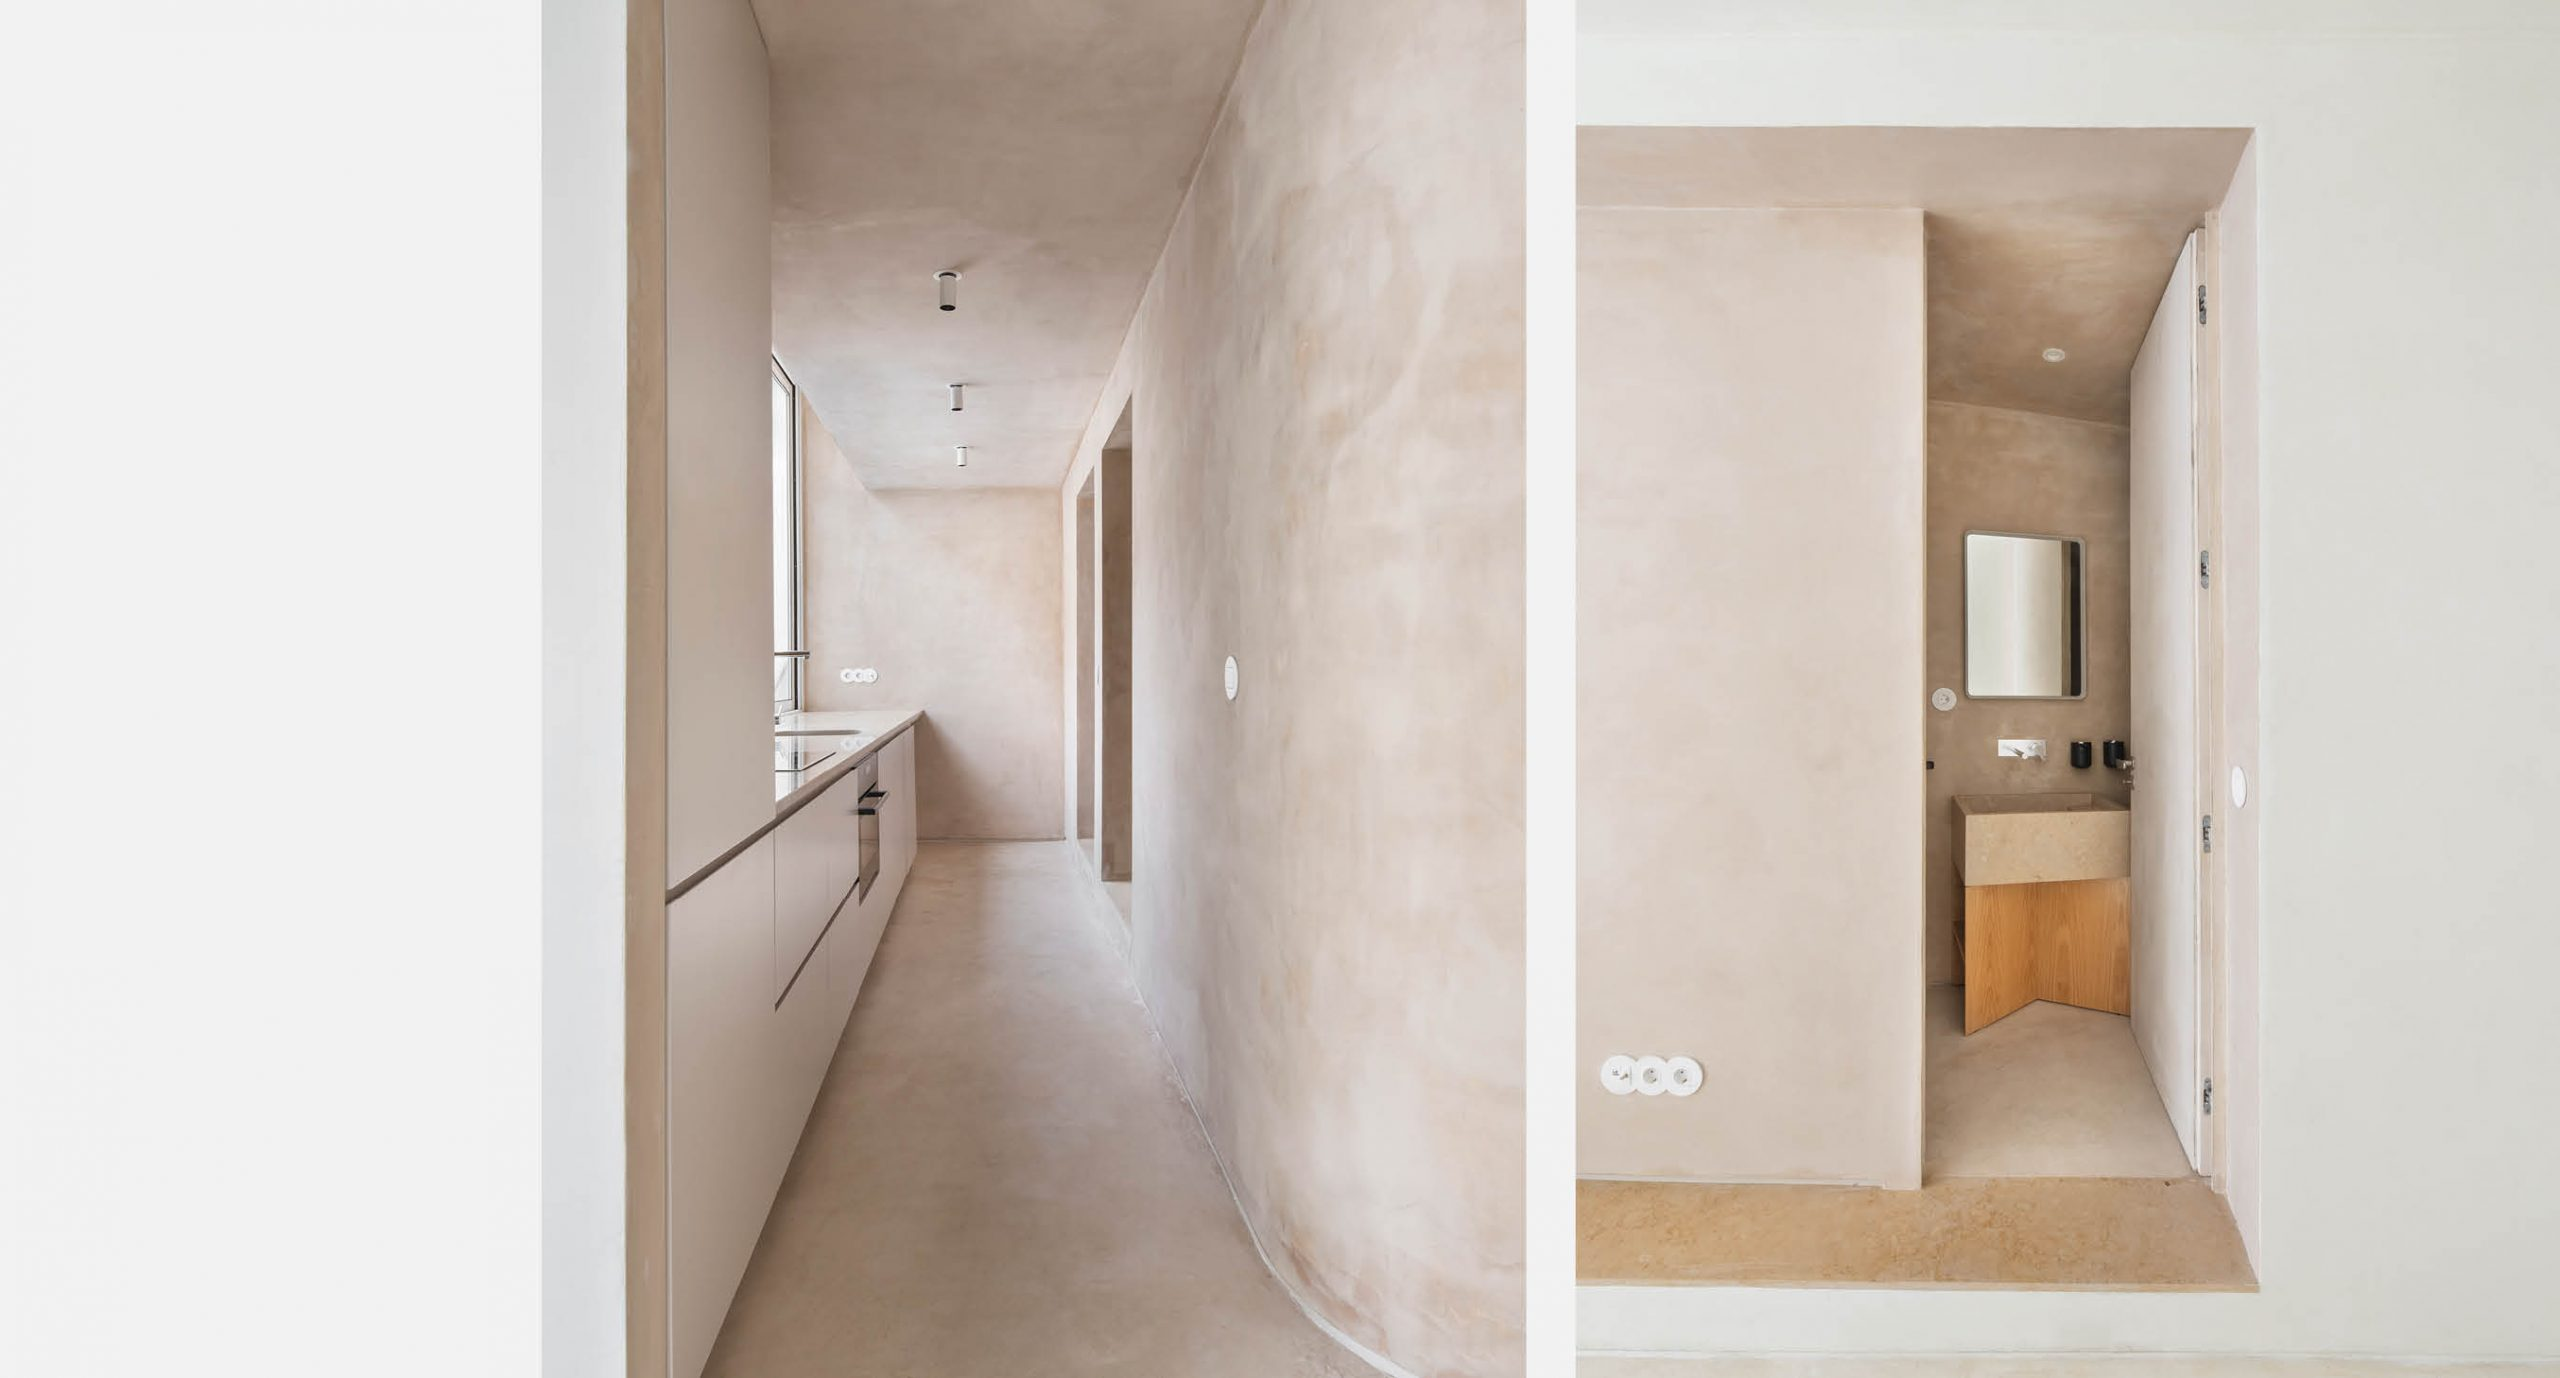 Spacegram_LeiteVasconcelos_Limestone_Stucco_Bege_Curved_Wall03